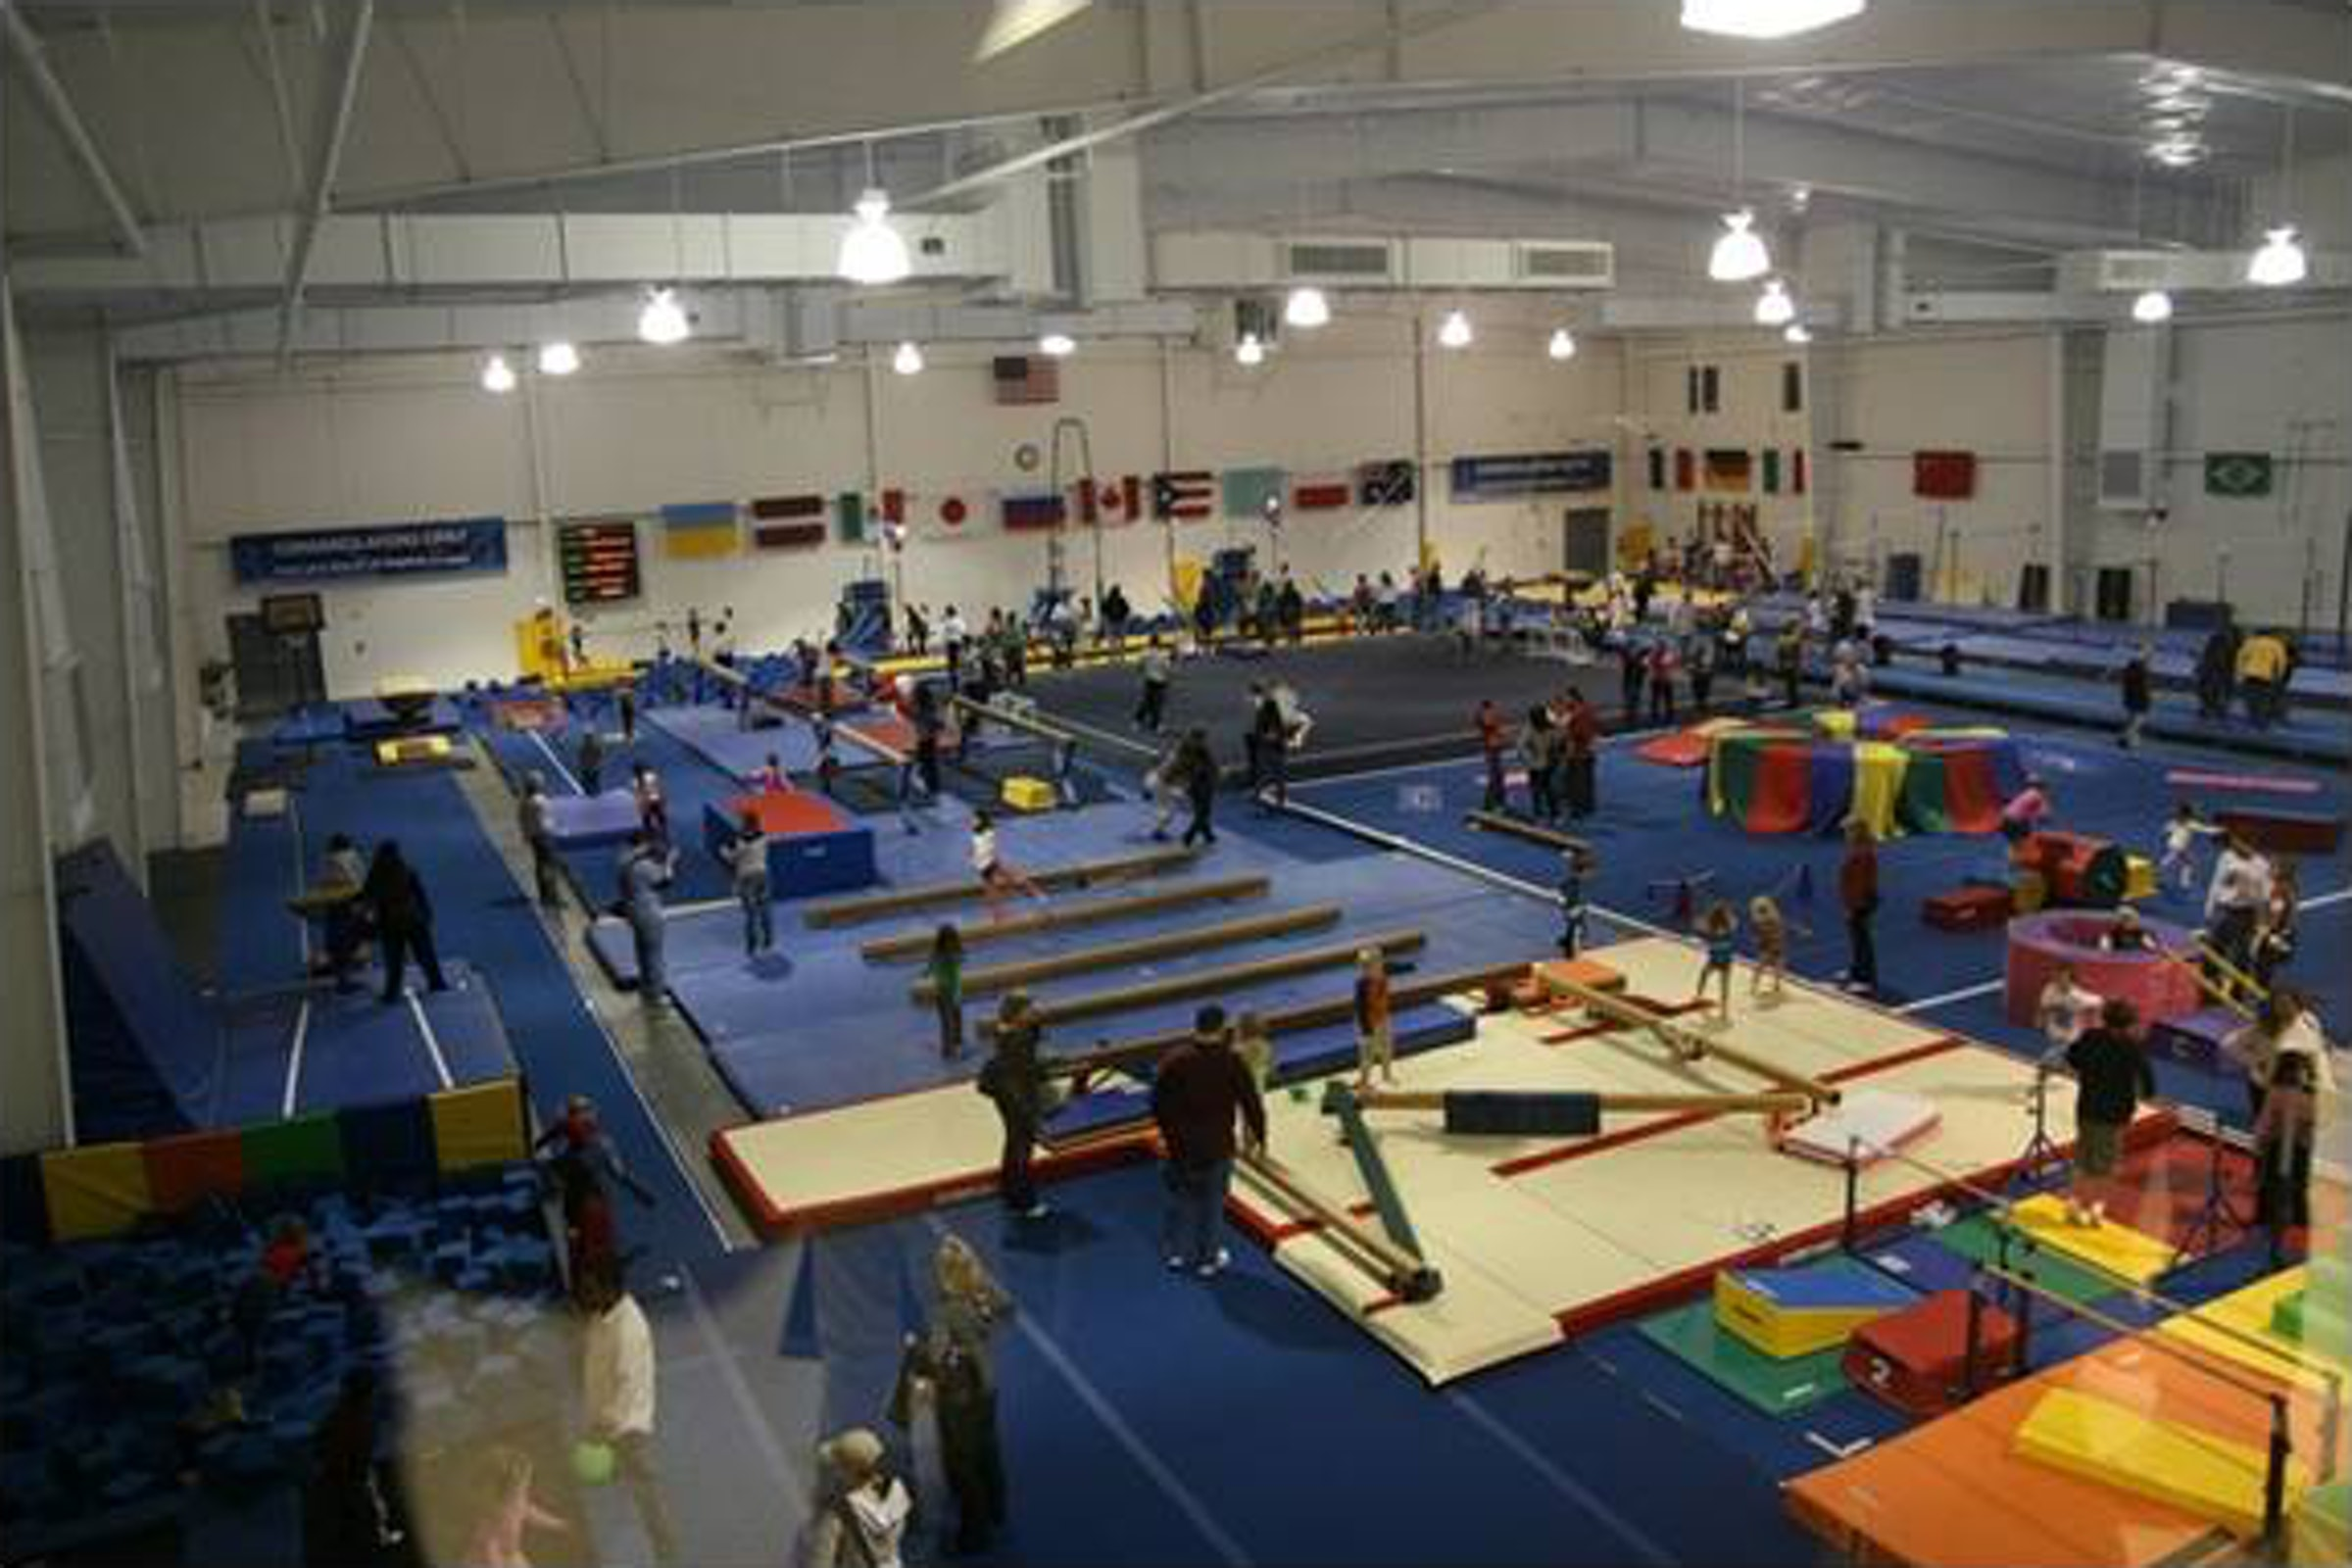 World Olympic Gymnastics Academy-Plano in Beyond Dallas